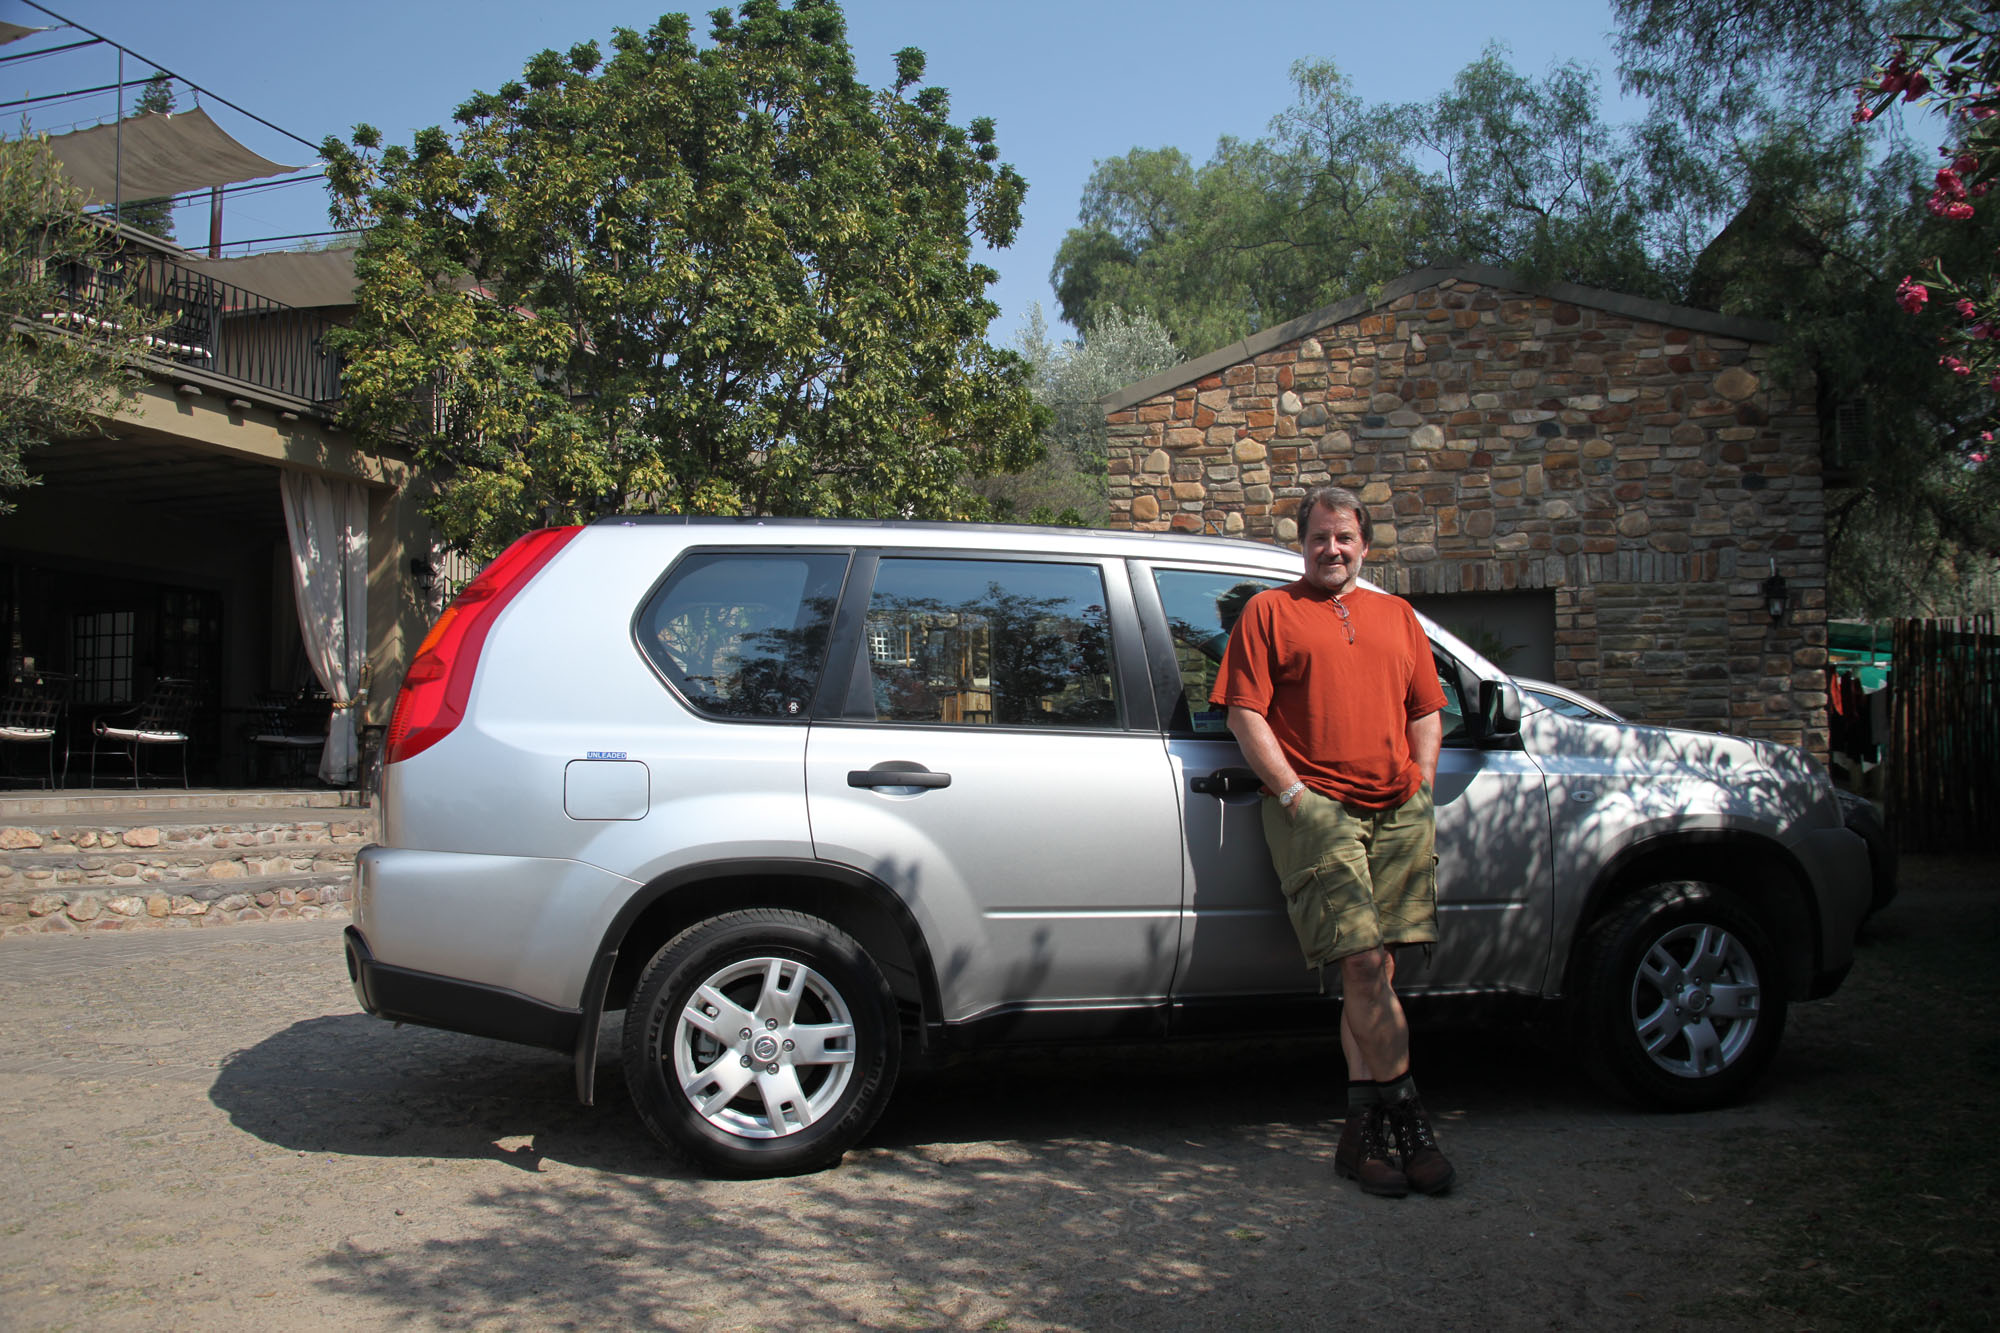 Ready for our trip into the vast unknown Namibian outback